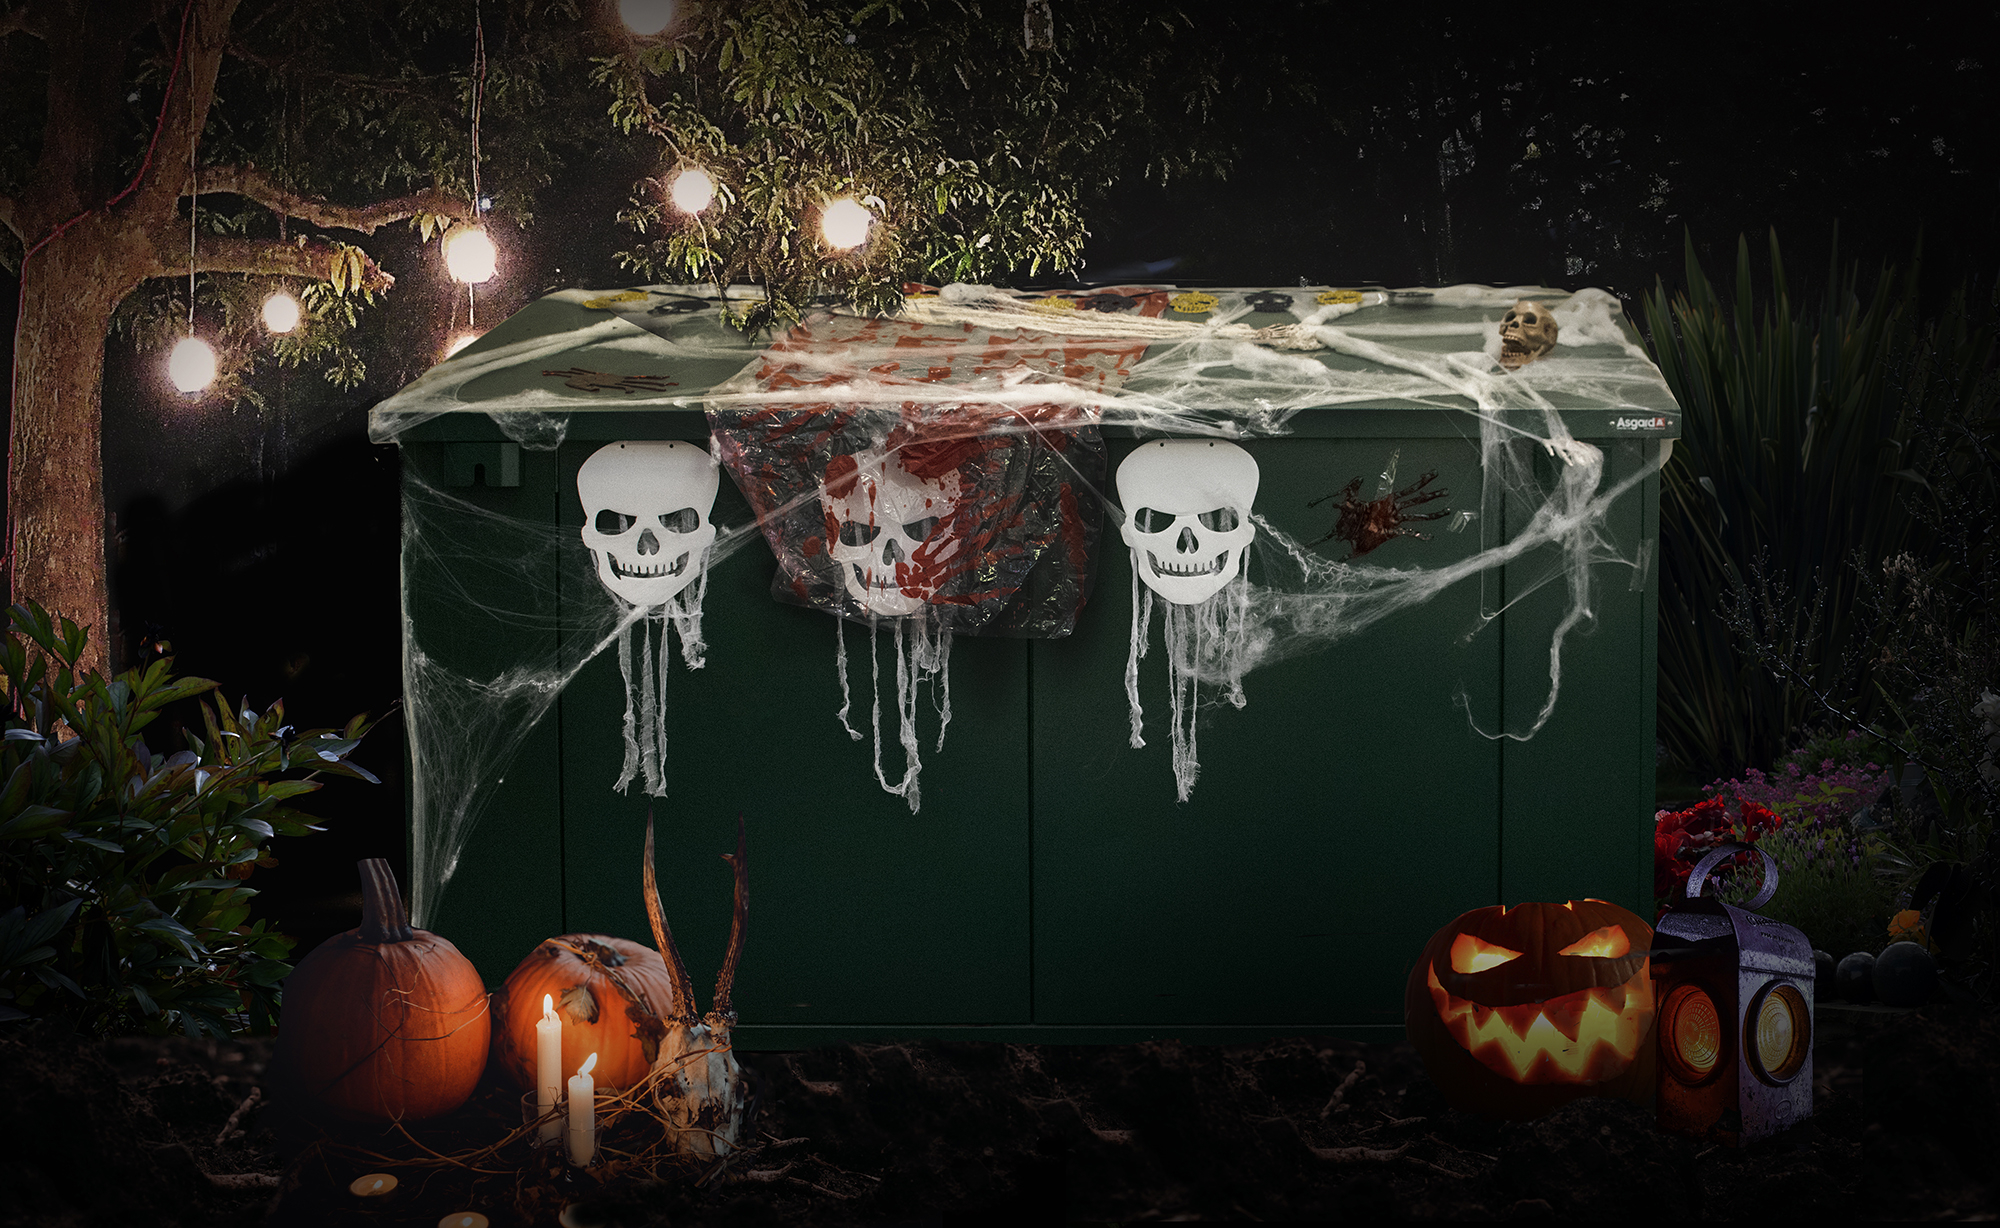 Decorate your shed for halloween with Asgard